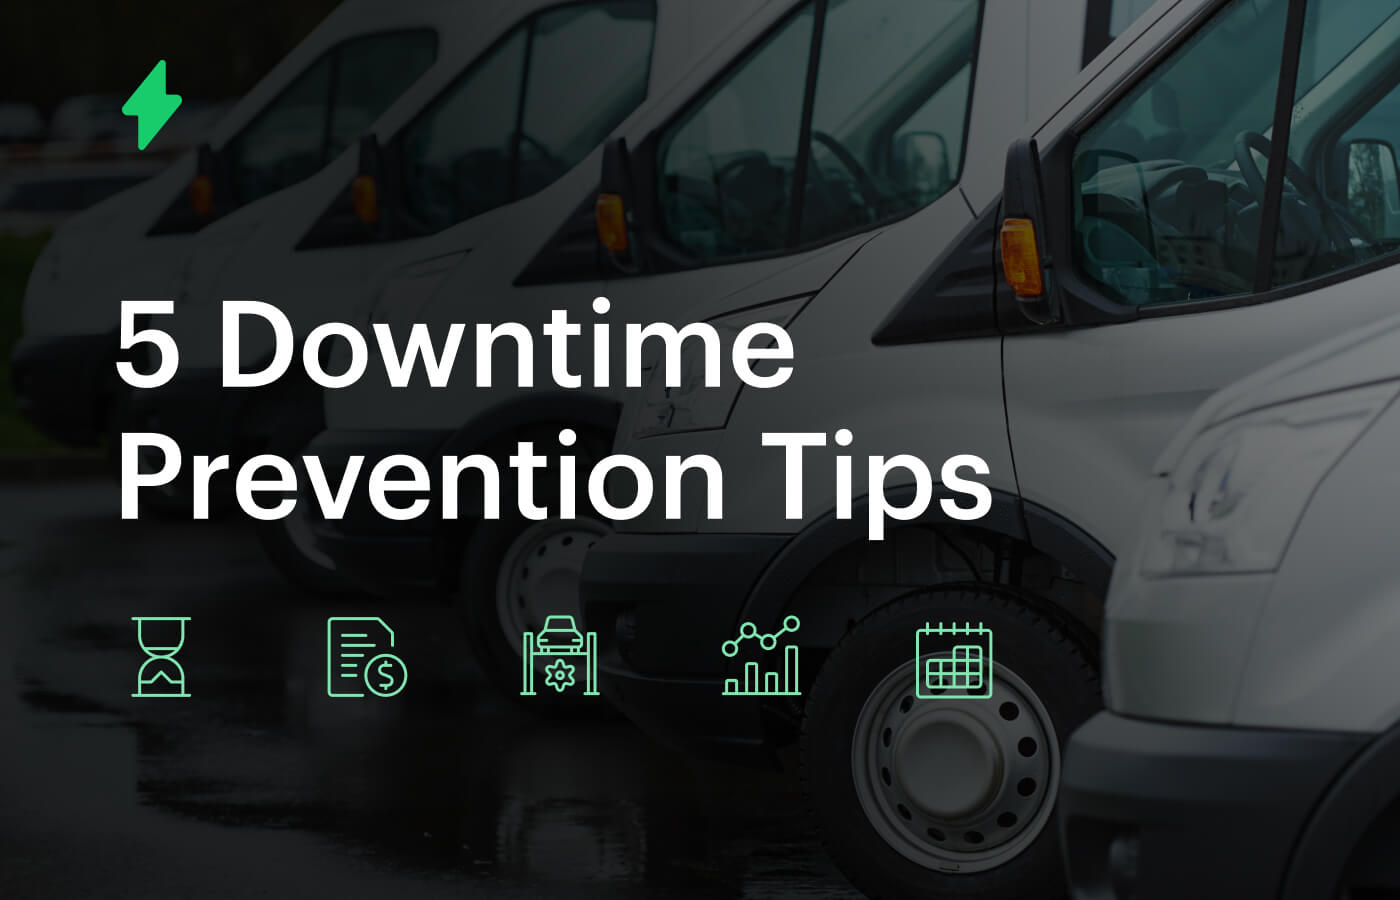 Downtime prevention tips